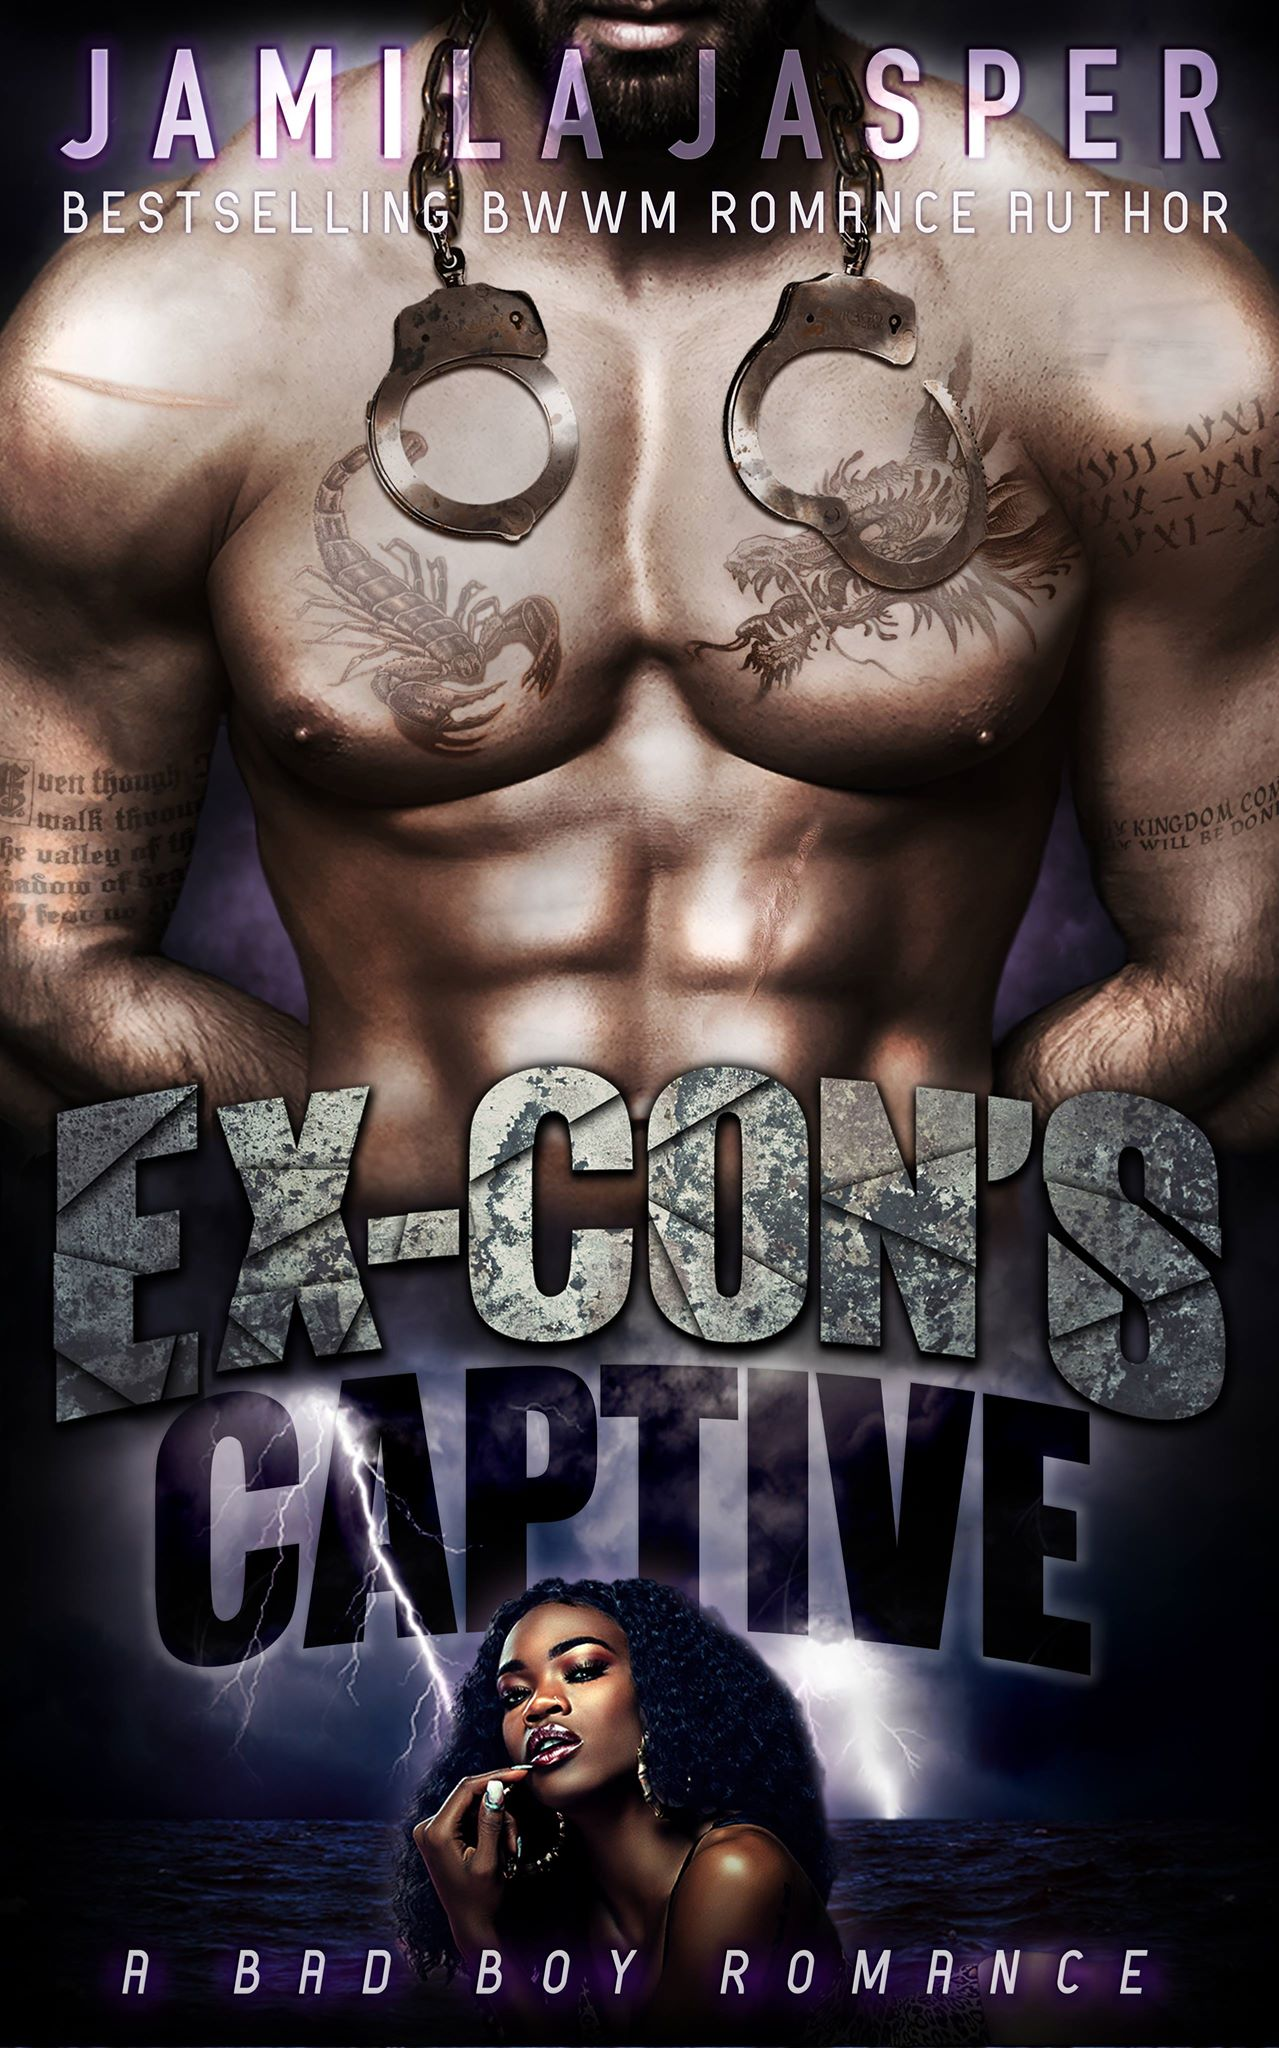 ex con's captive dark romance books hitman mafia romance bad boy bwwm romance novels